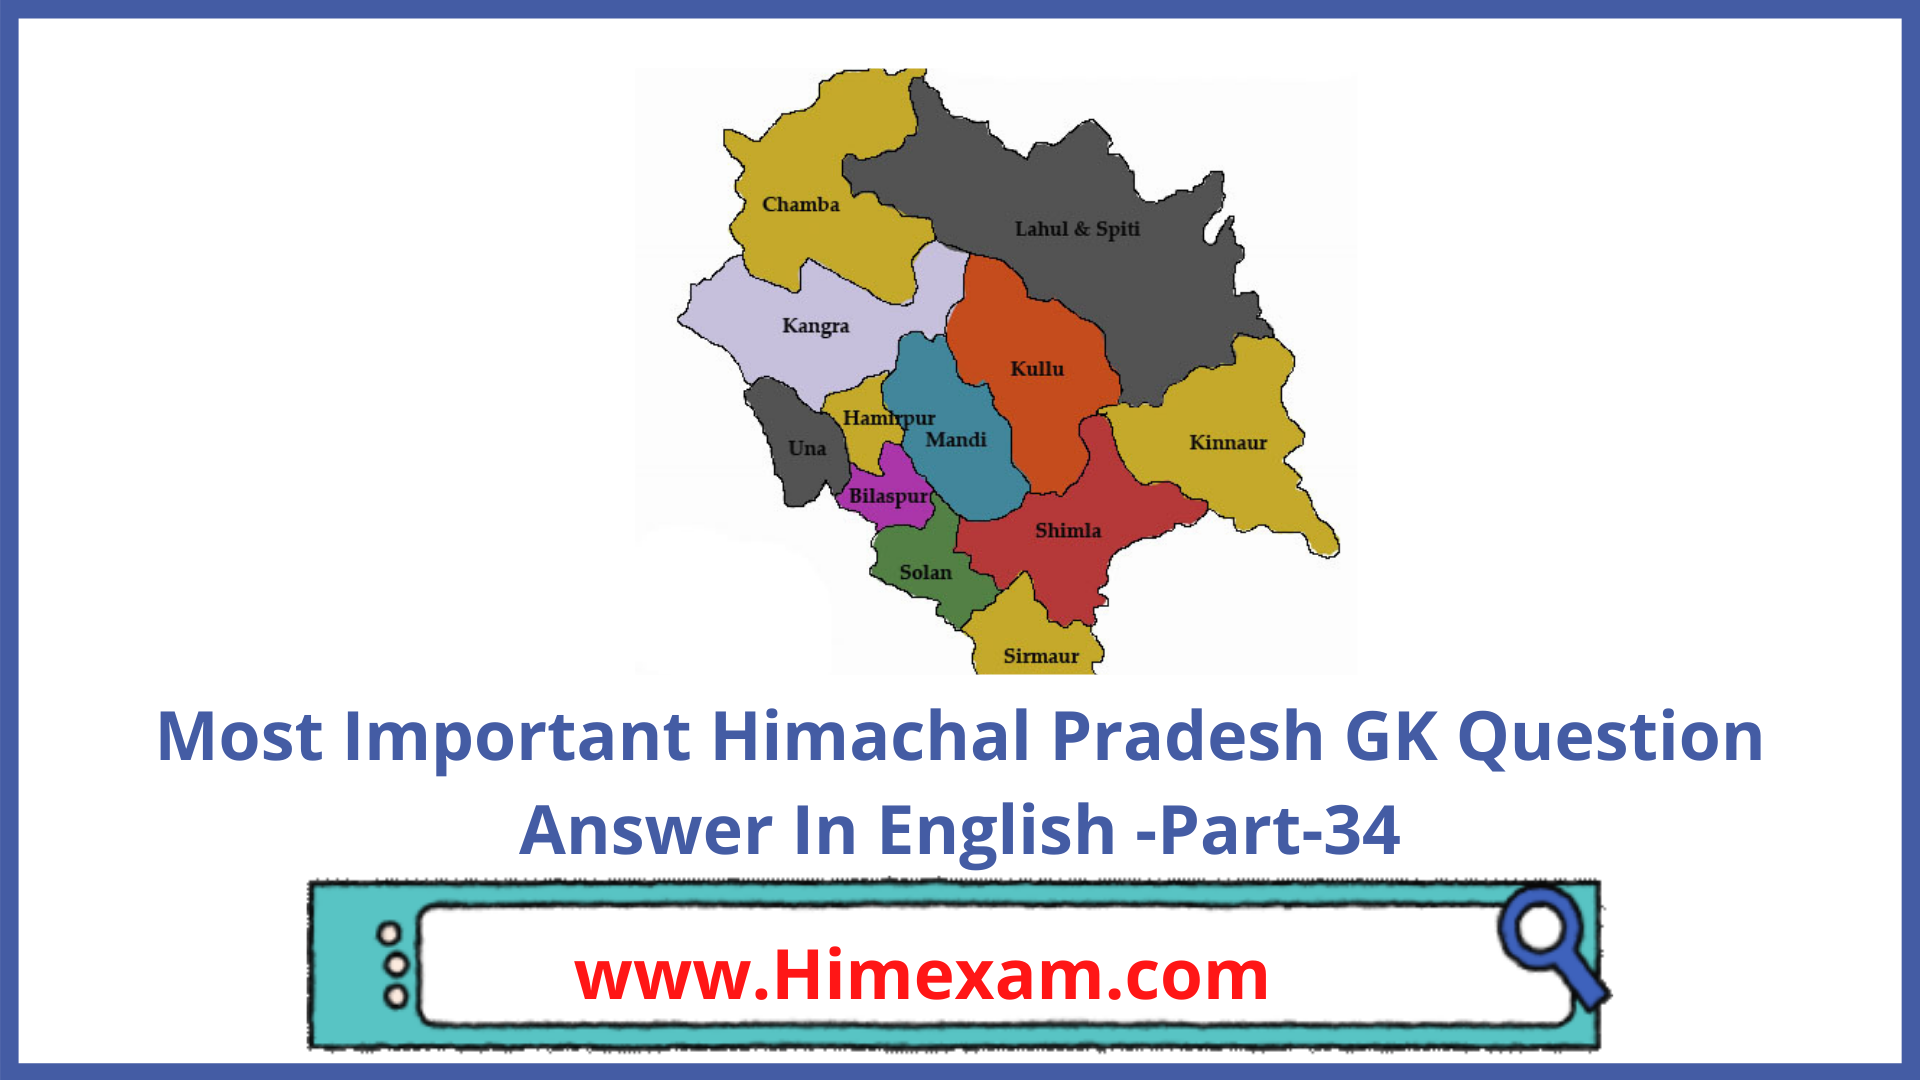 Most Important Himachal Pradesh GK Question Answer In English -Part-34